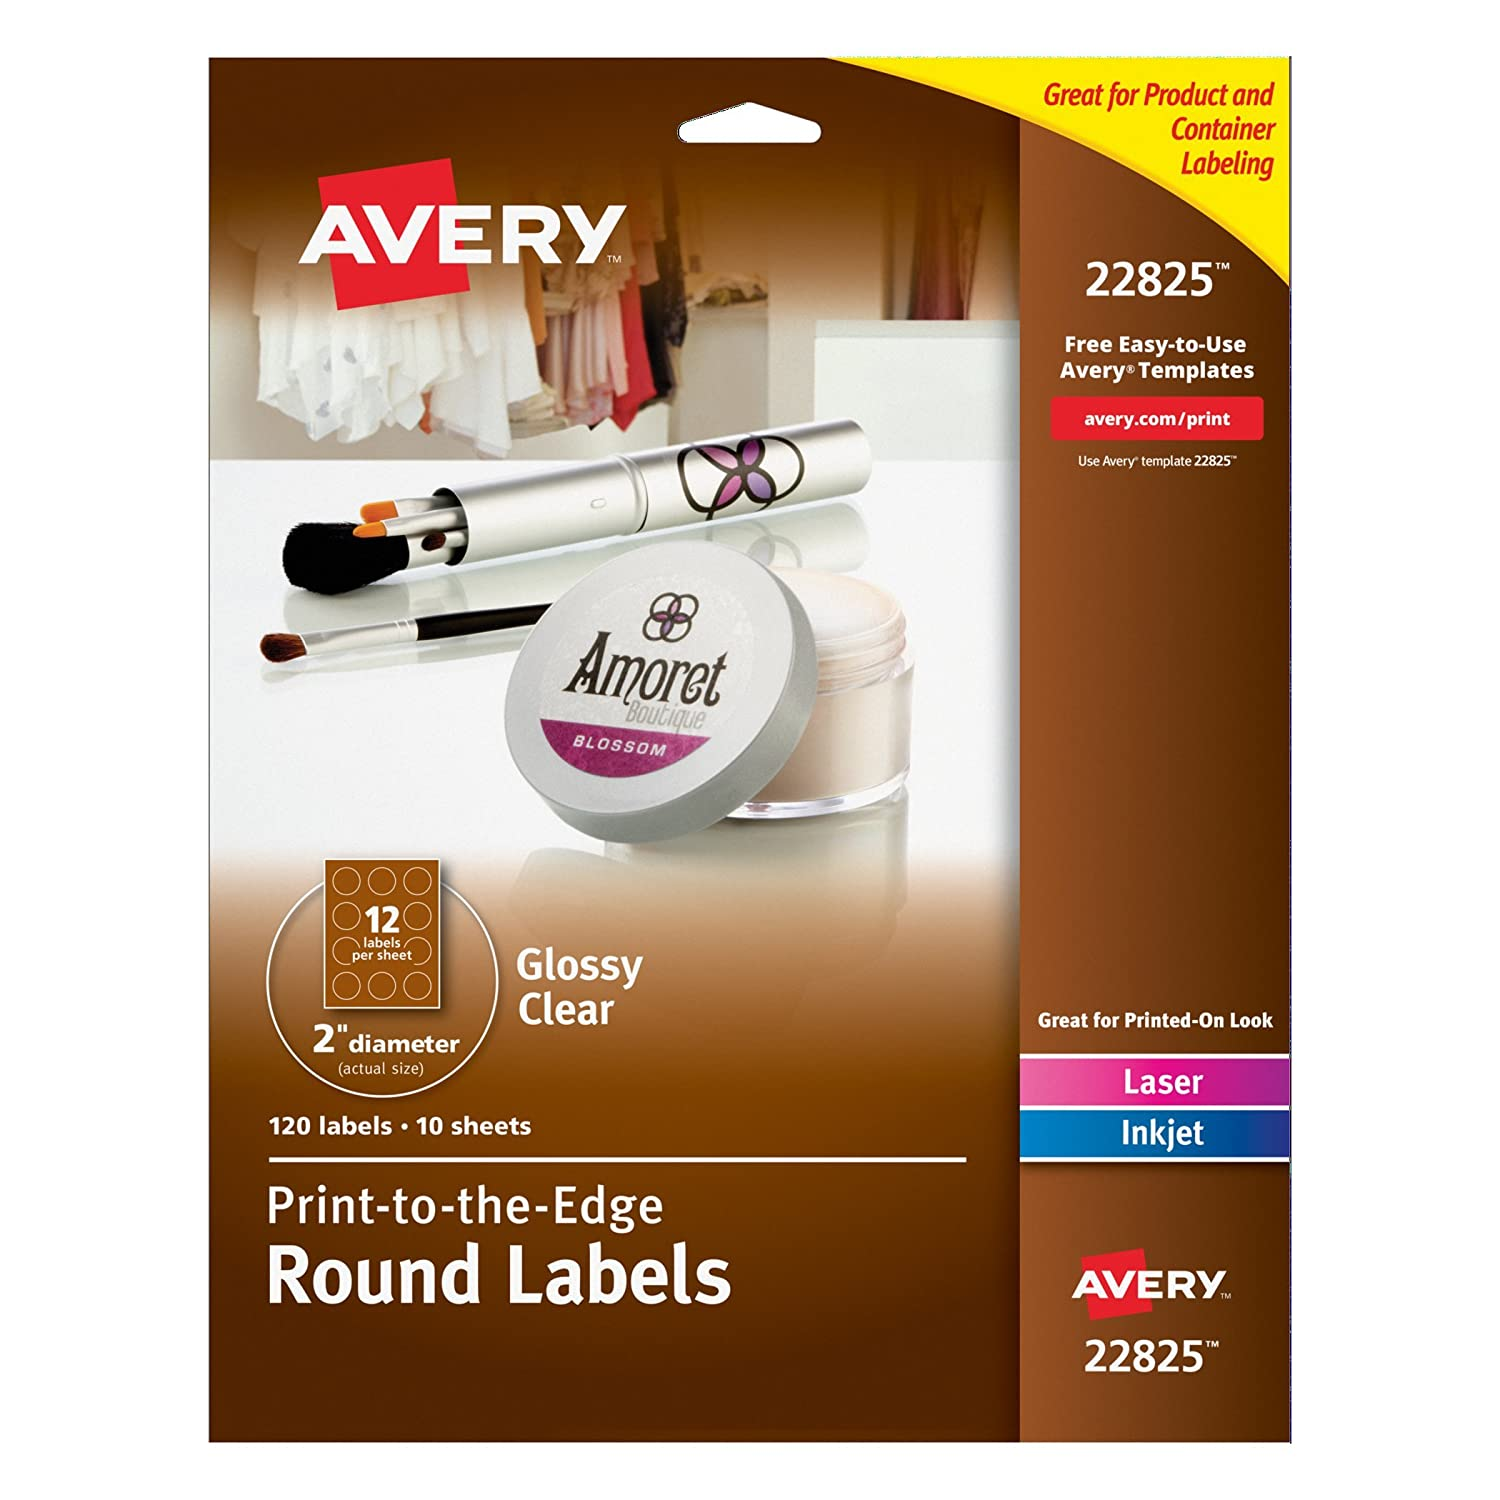 com avery print to the edge round labels glossy com avery print to the edge round labels glossy clear 2 inch diameter 120 labels 22825 all purpose labels office products